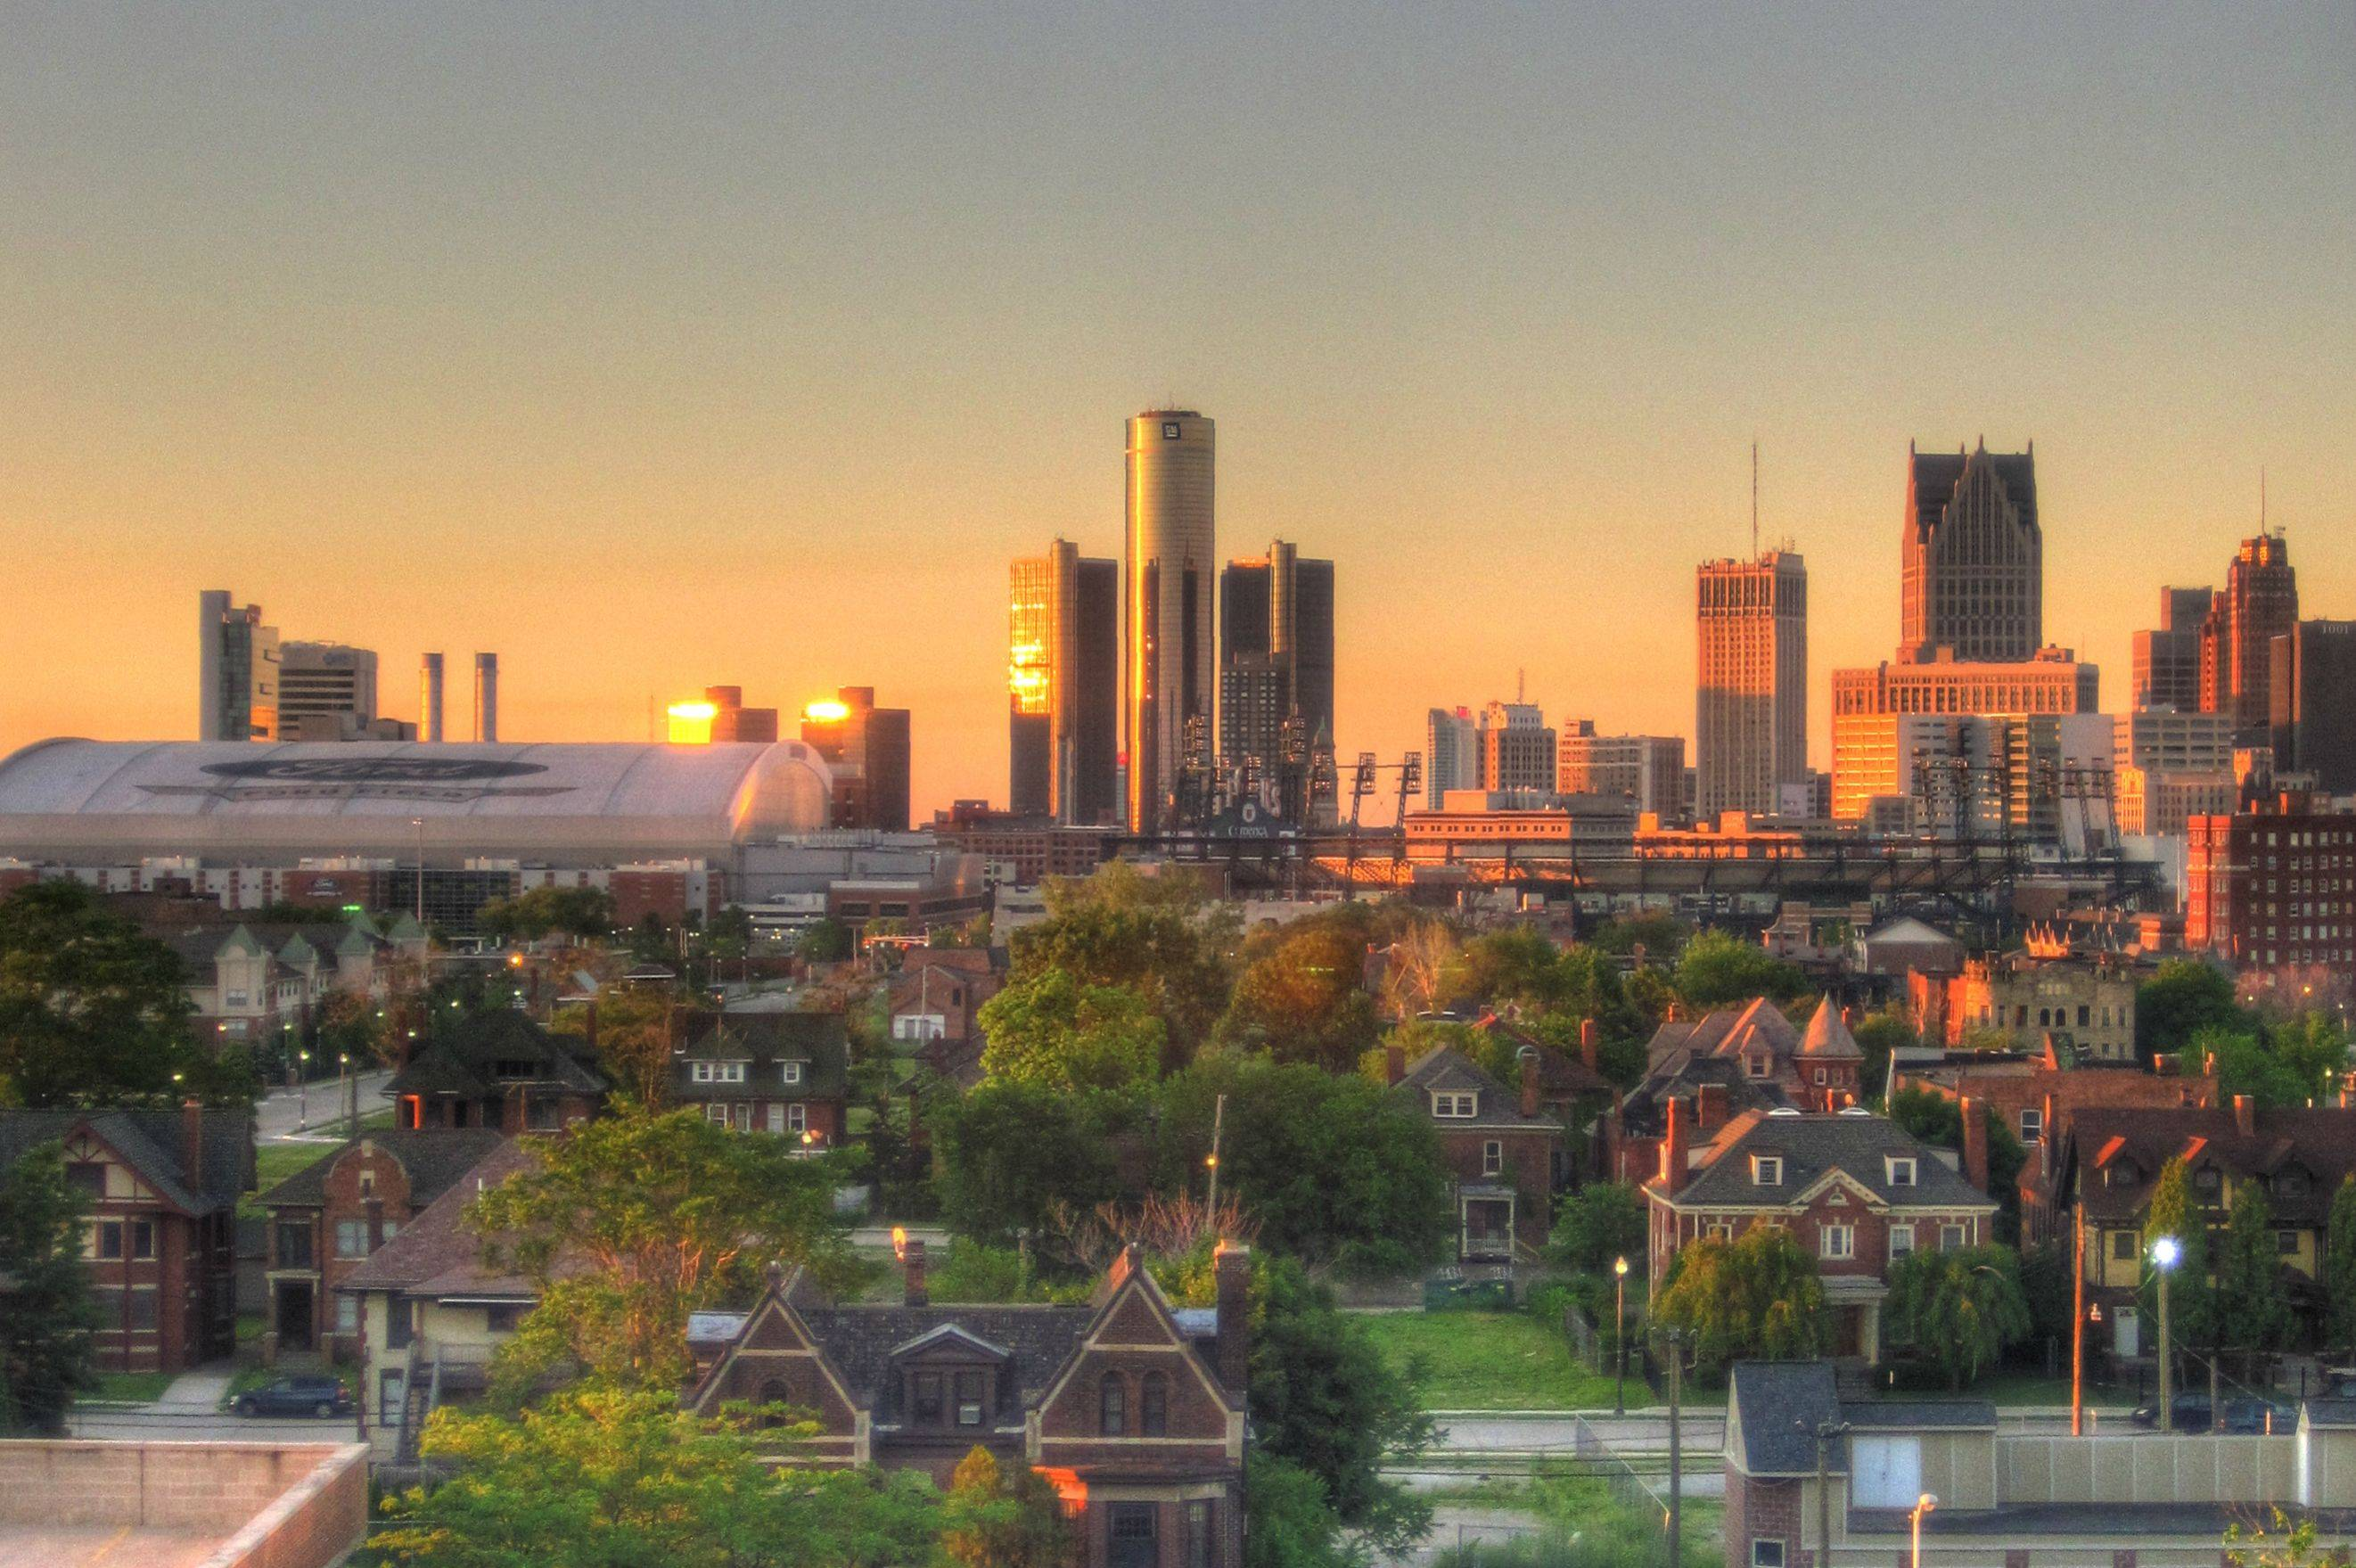 Detroit in the morning by ObnoxiousCarbuncle